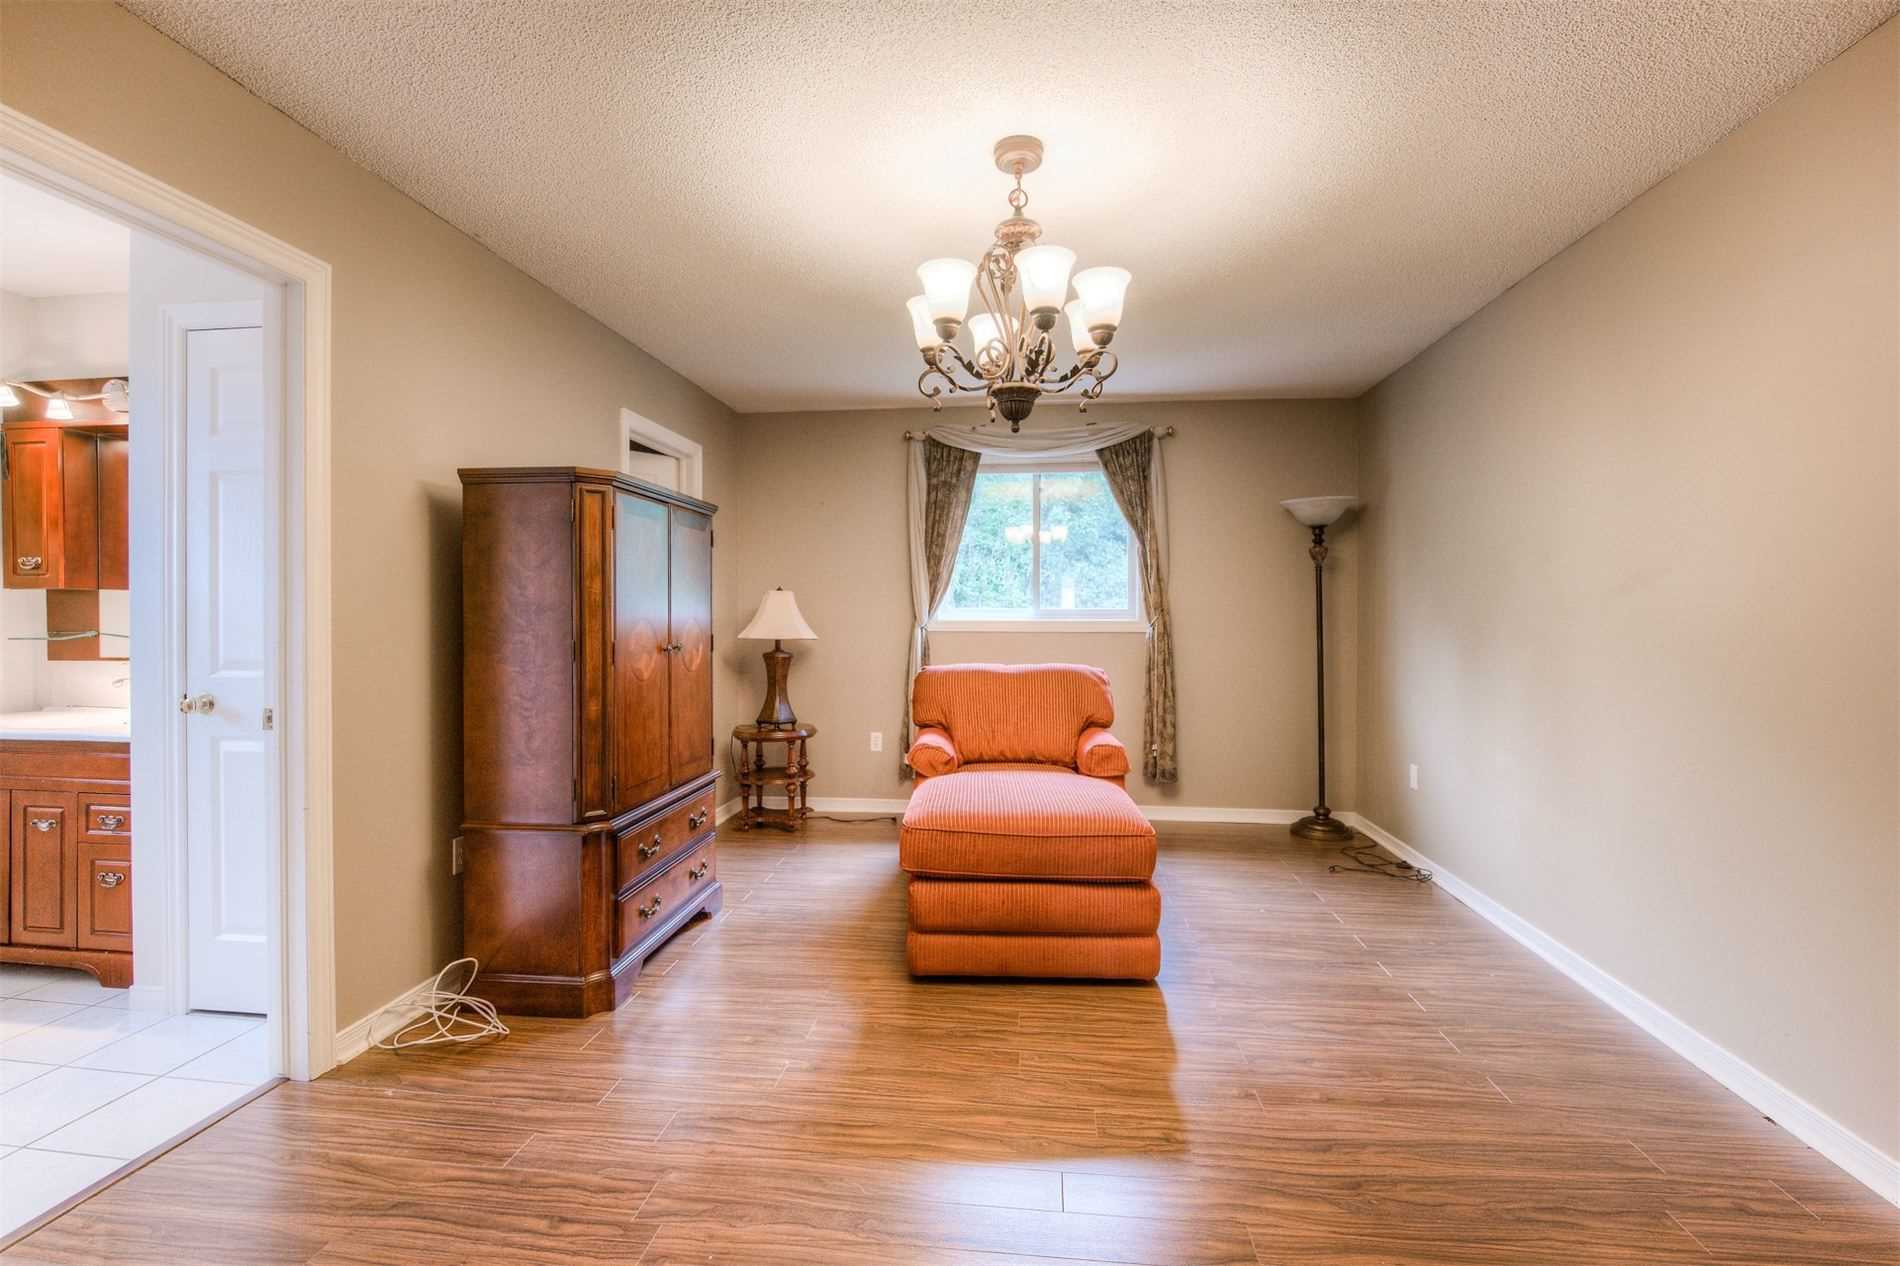 310 Greenbrier Rd, Cambridge, Ontario N1P1C4, 3 Bedrooms Bedrooms, 10 Rooms Rooms,4 BathroomsBathrooms,Detached,For Sale,Greenbrier,X5351794